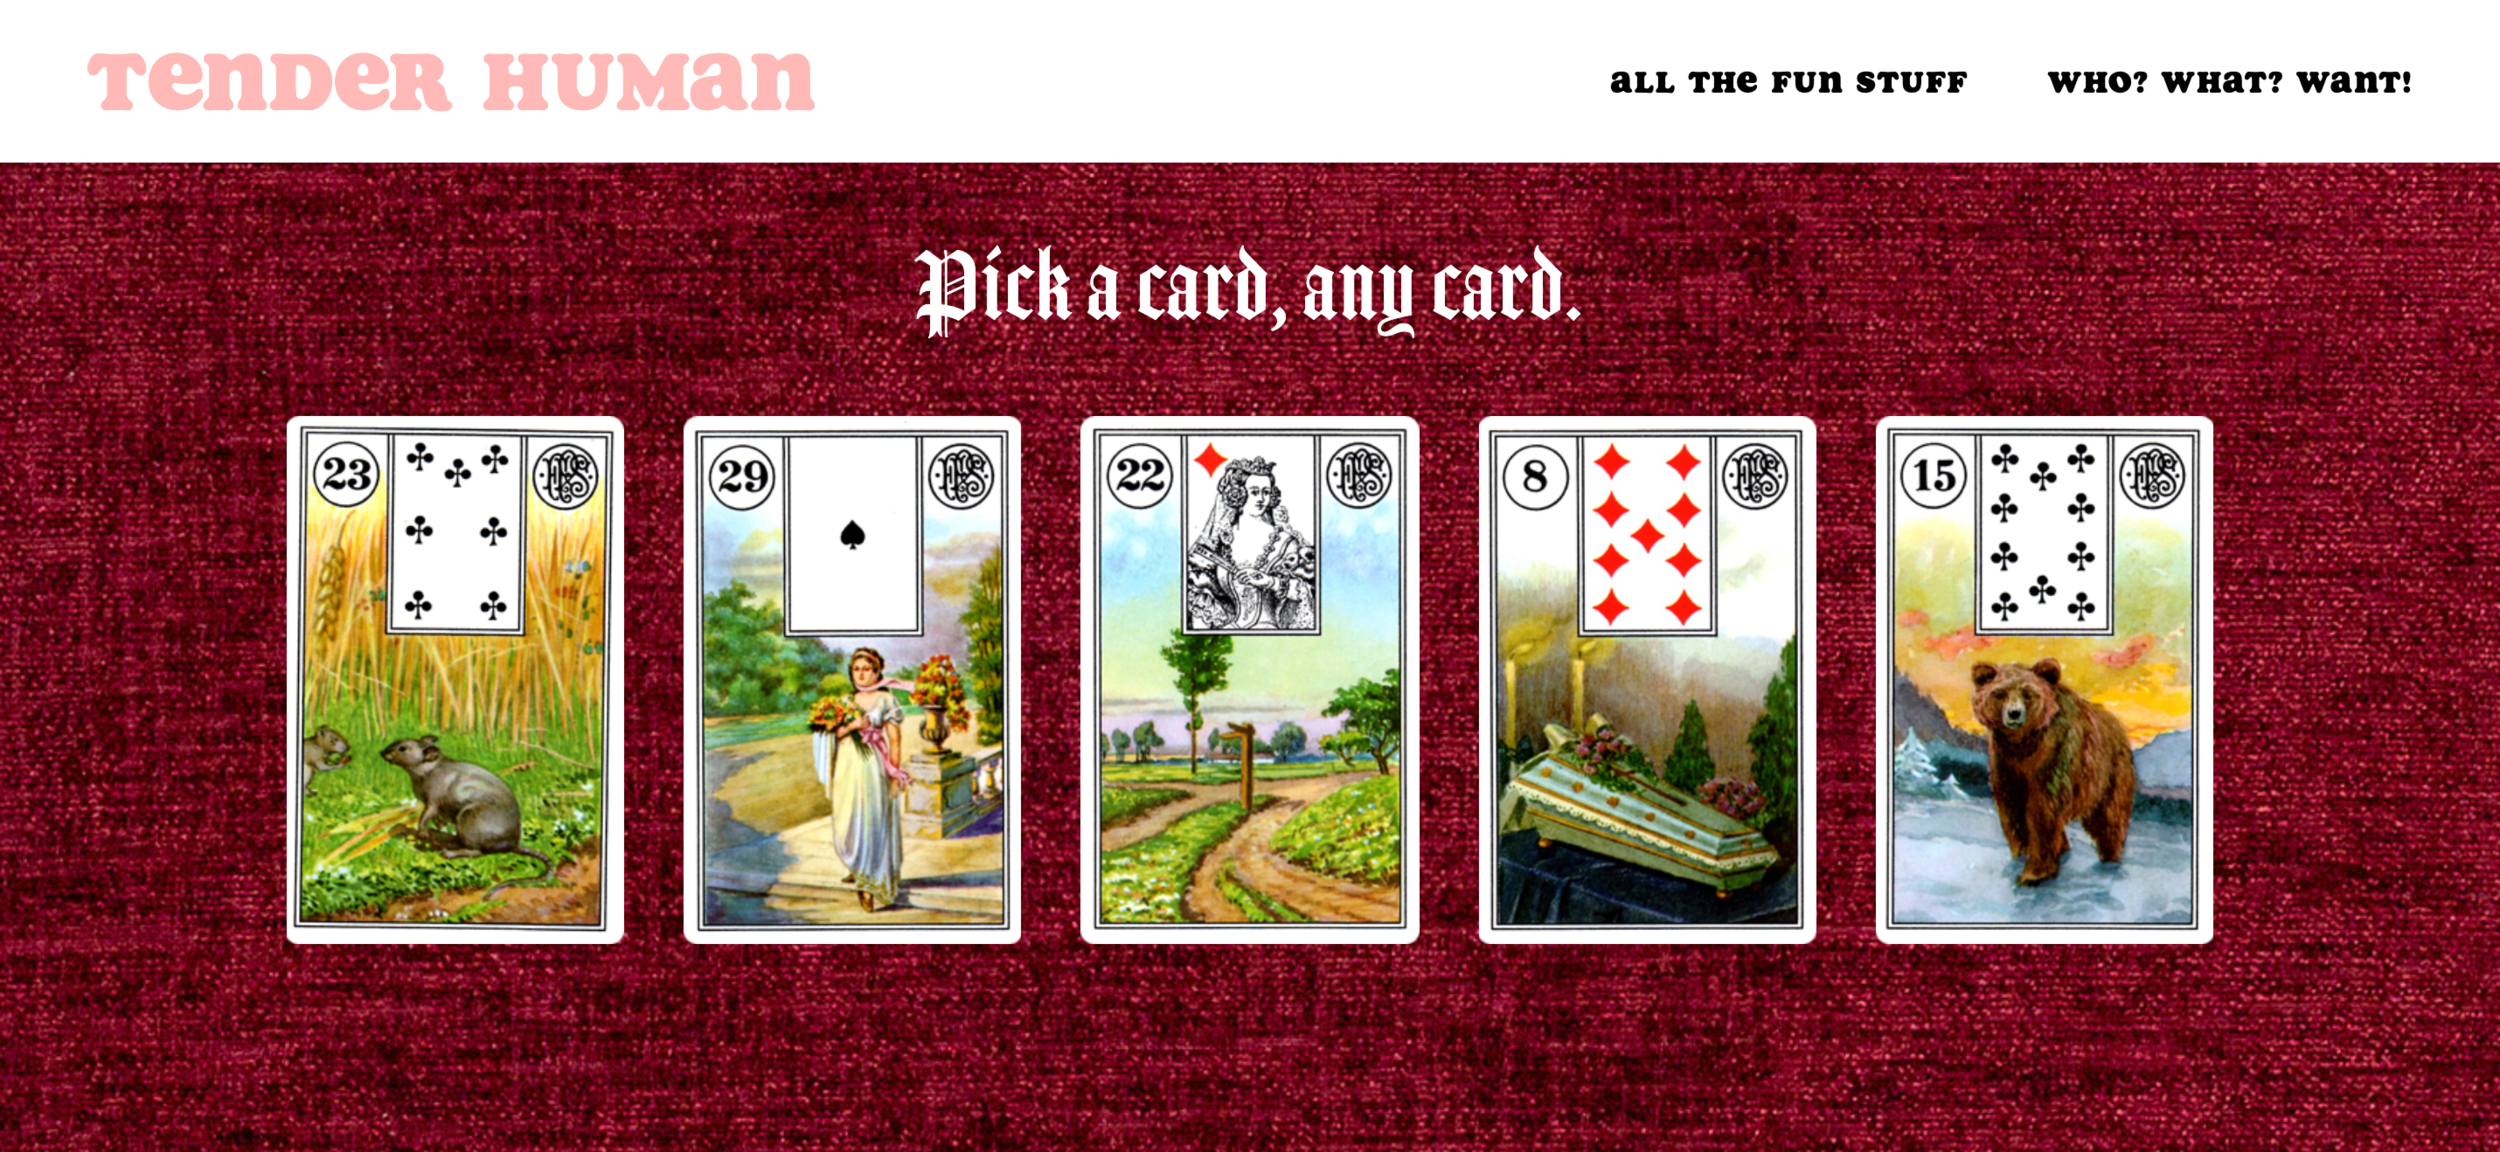 screencapture-tenderhuman-fortune-cards-mme-2019-04-10-16_22_24.png